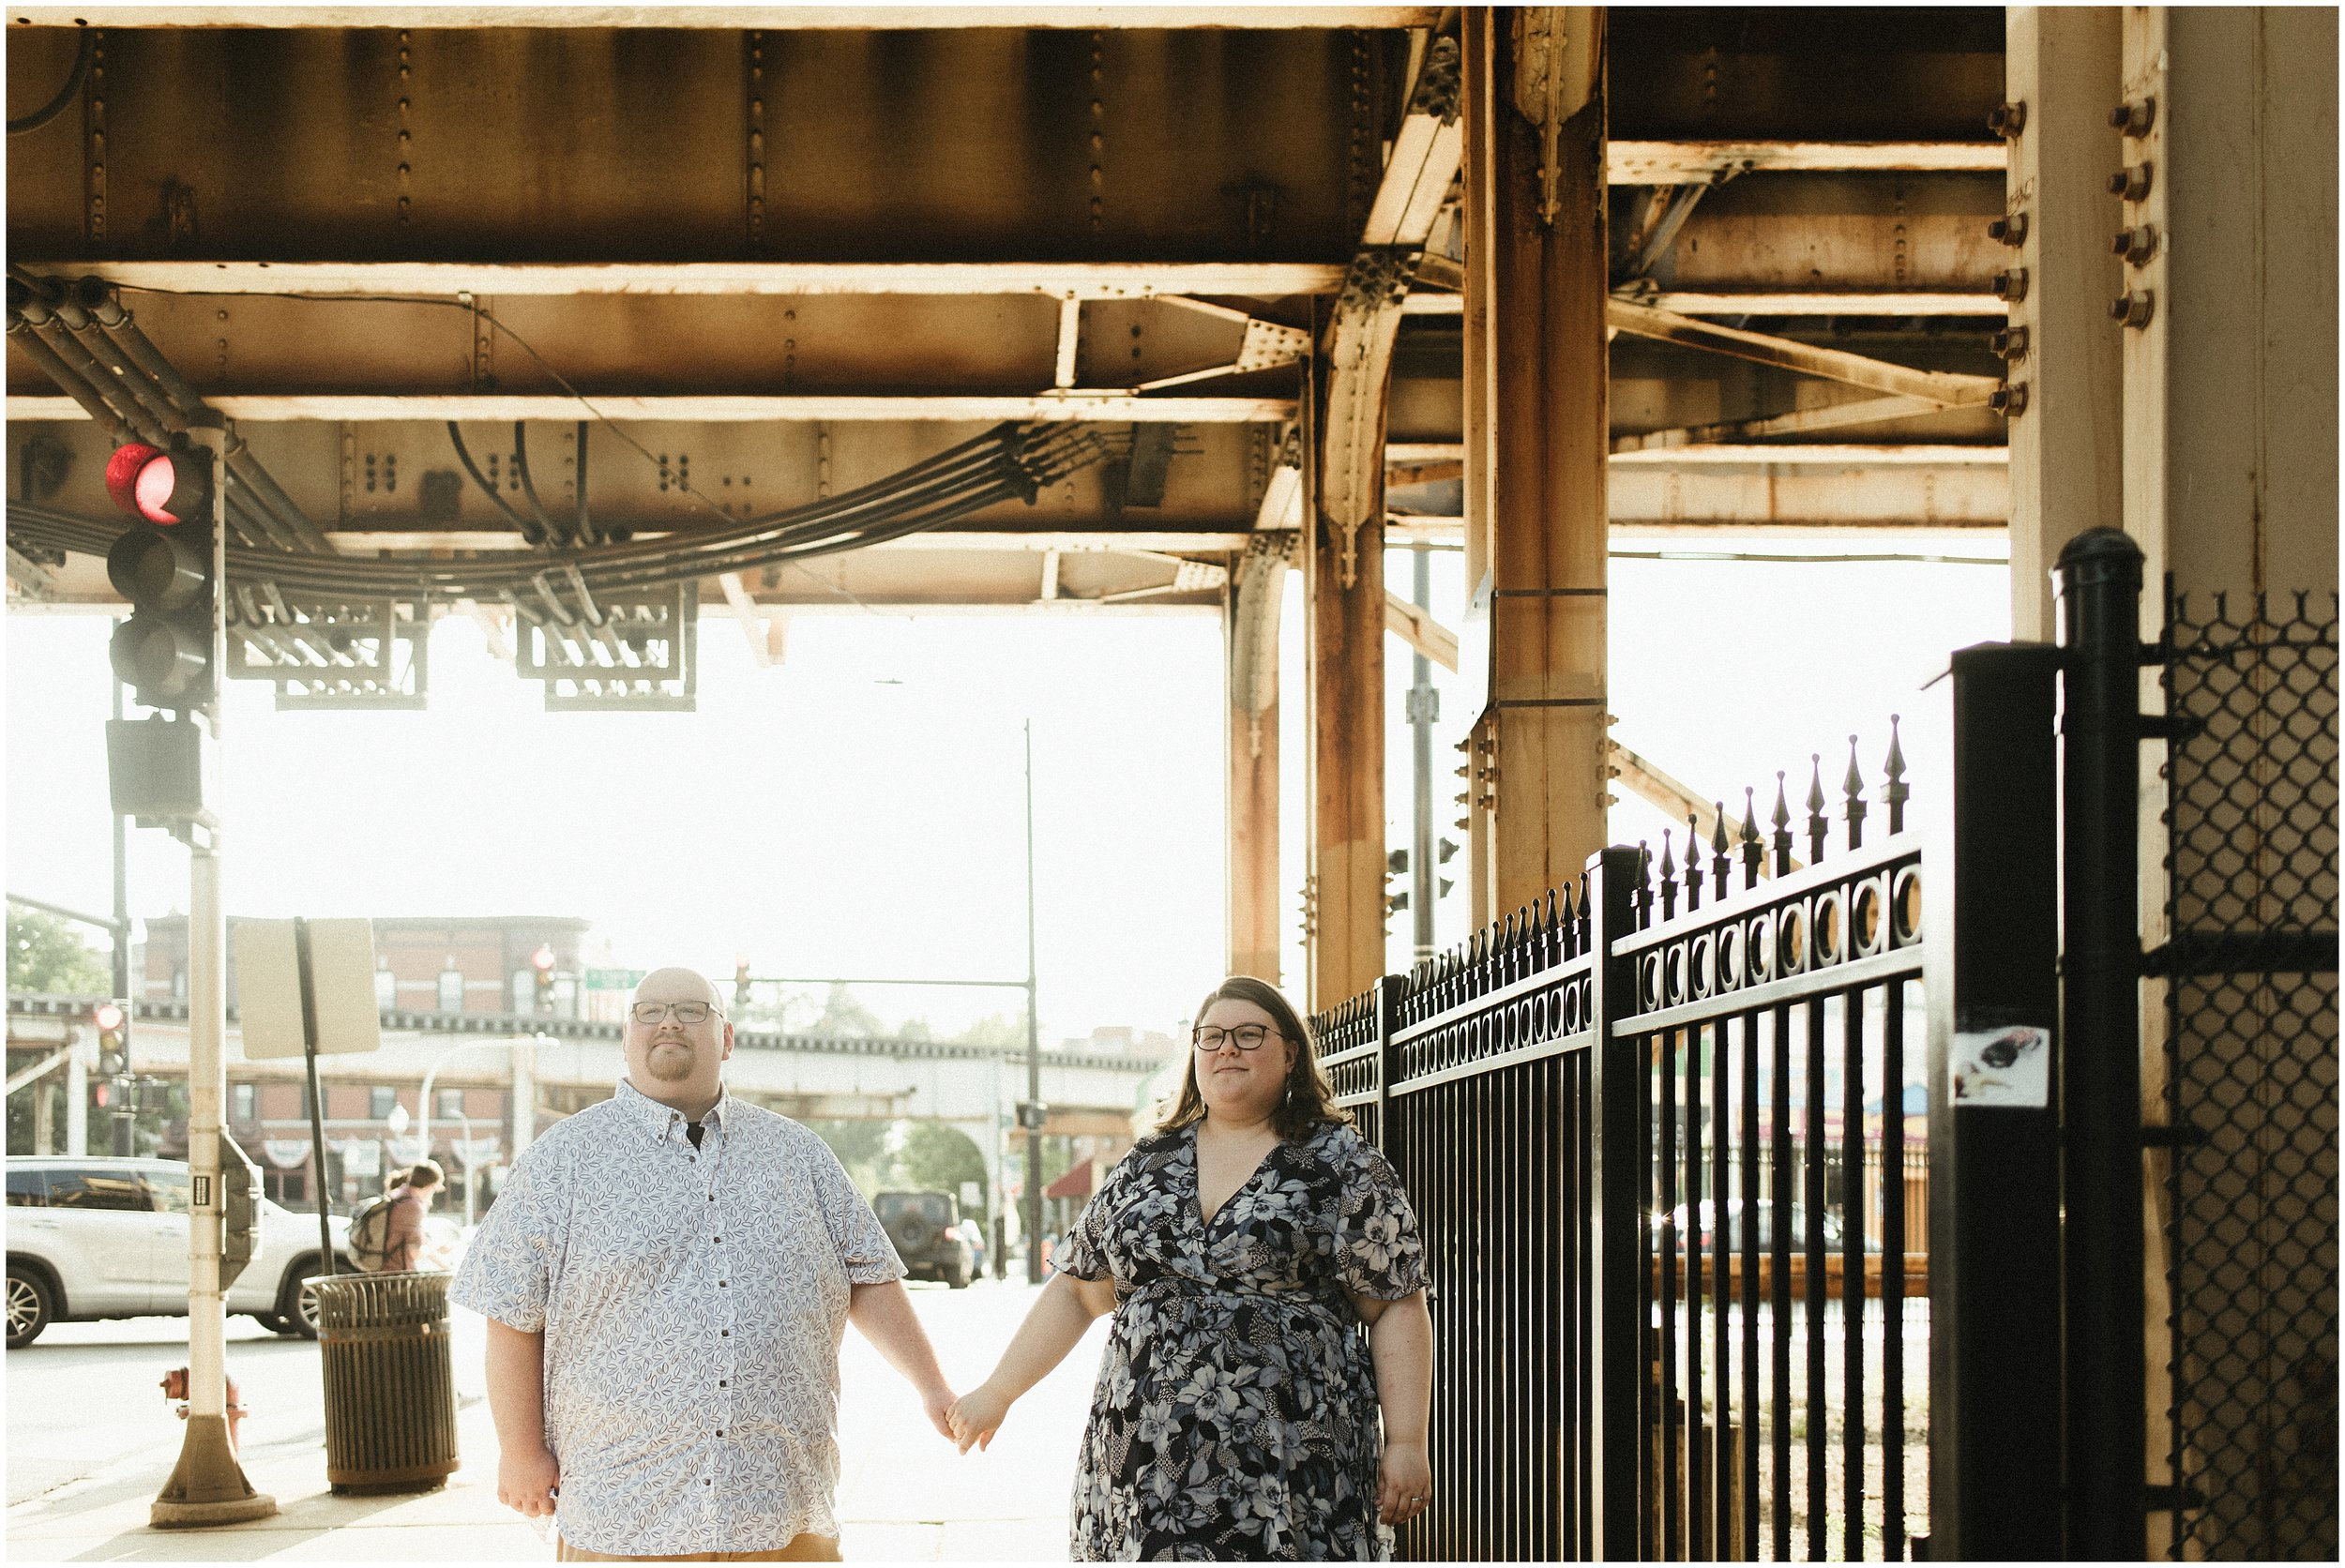 Maren and Dave   Urban Engagement Session    Pick Me Up Cafe Clark Street   Chicago, IL   Naperville Travel Wedding Photographer